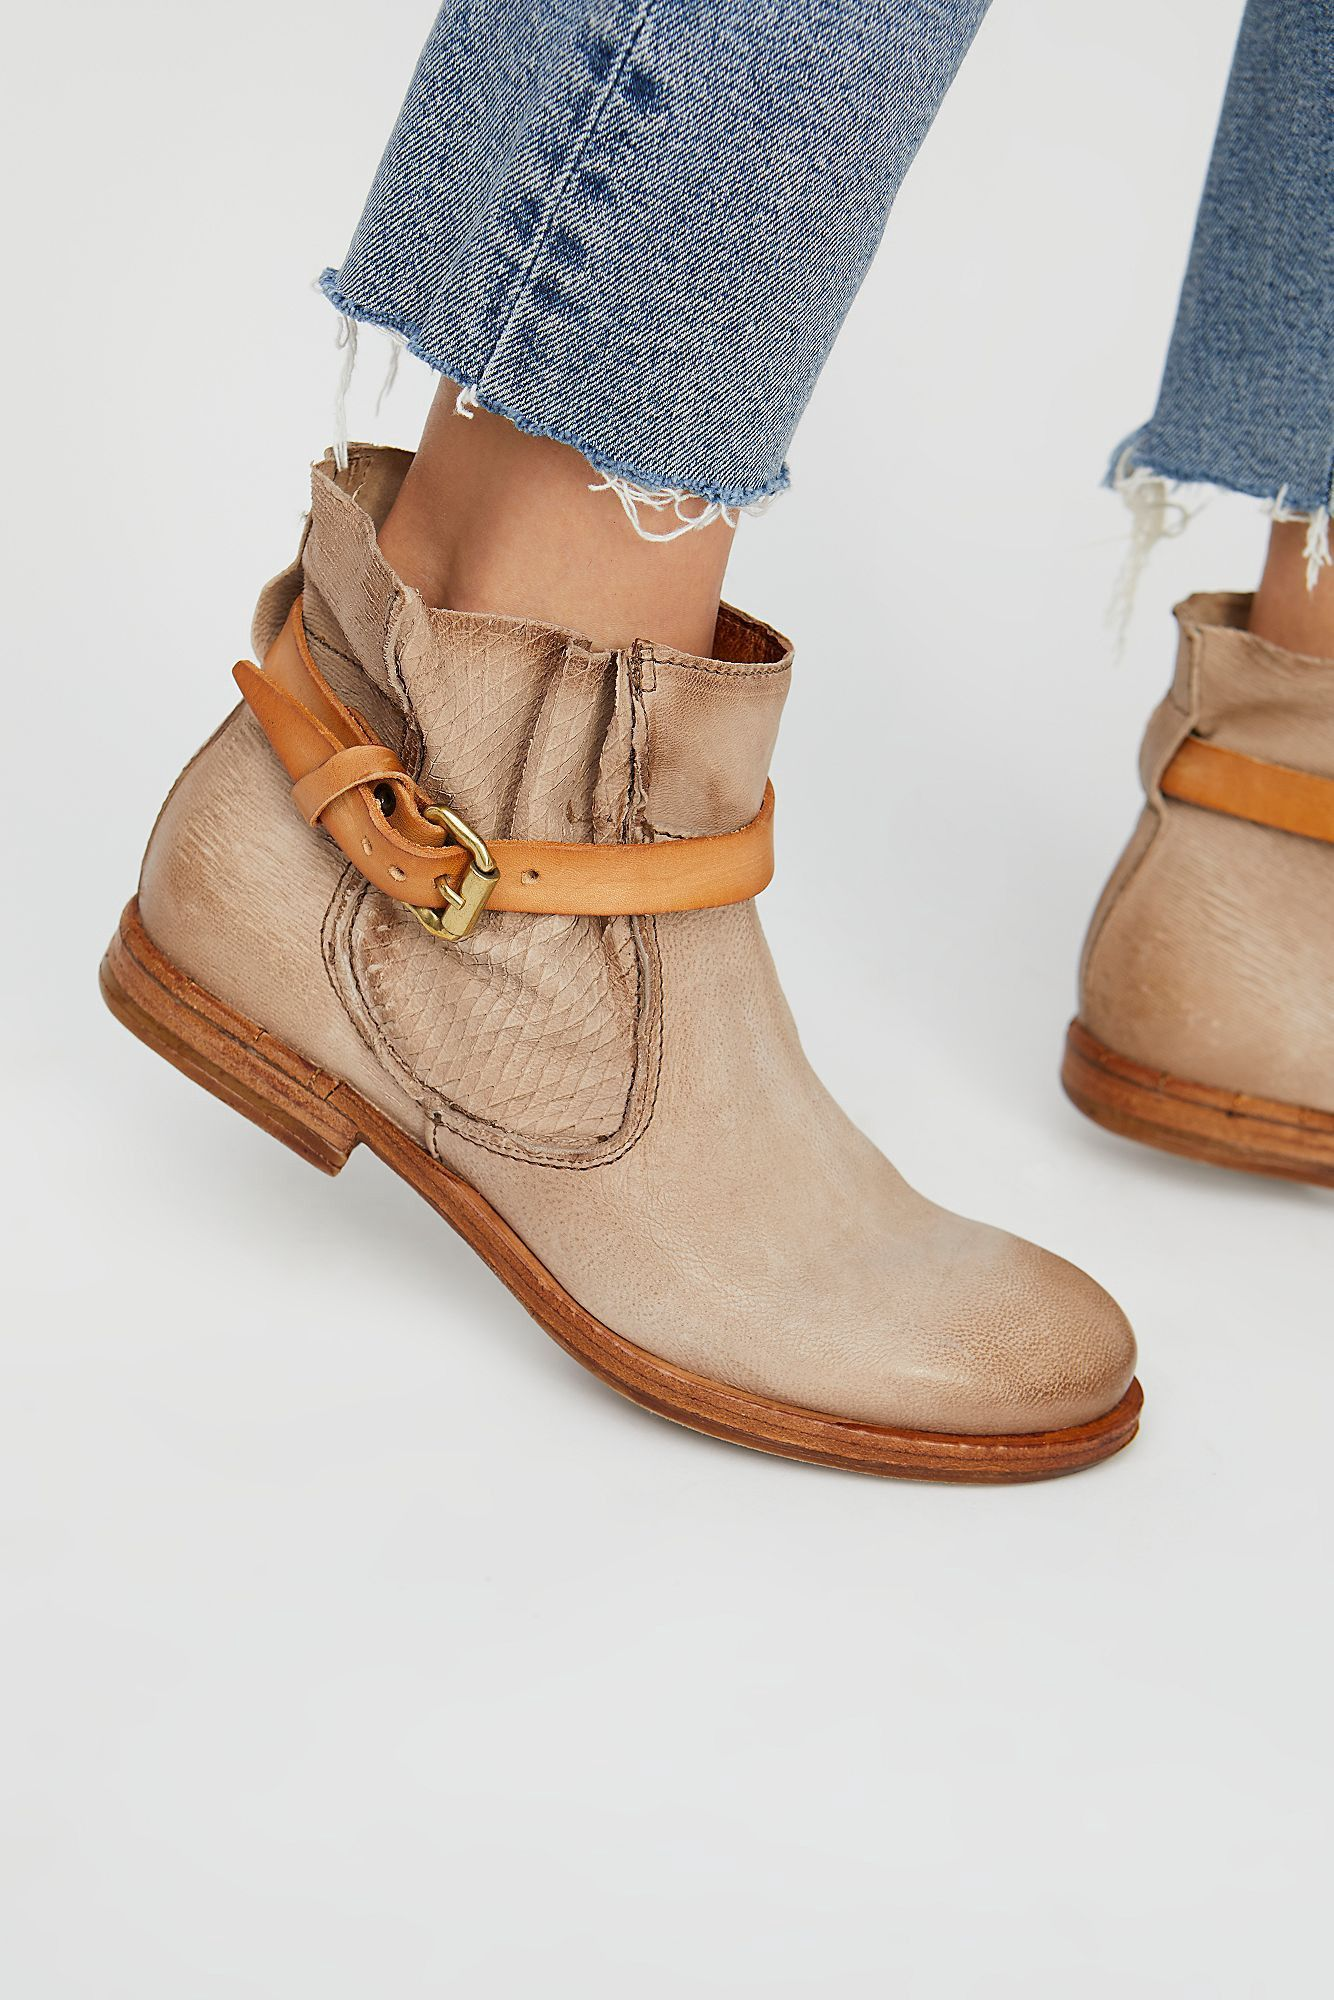 Free People Imperial Distressed Ankle - Rhino 36 Euro Chaussures Femme 27da9f63070